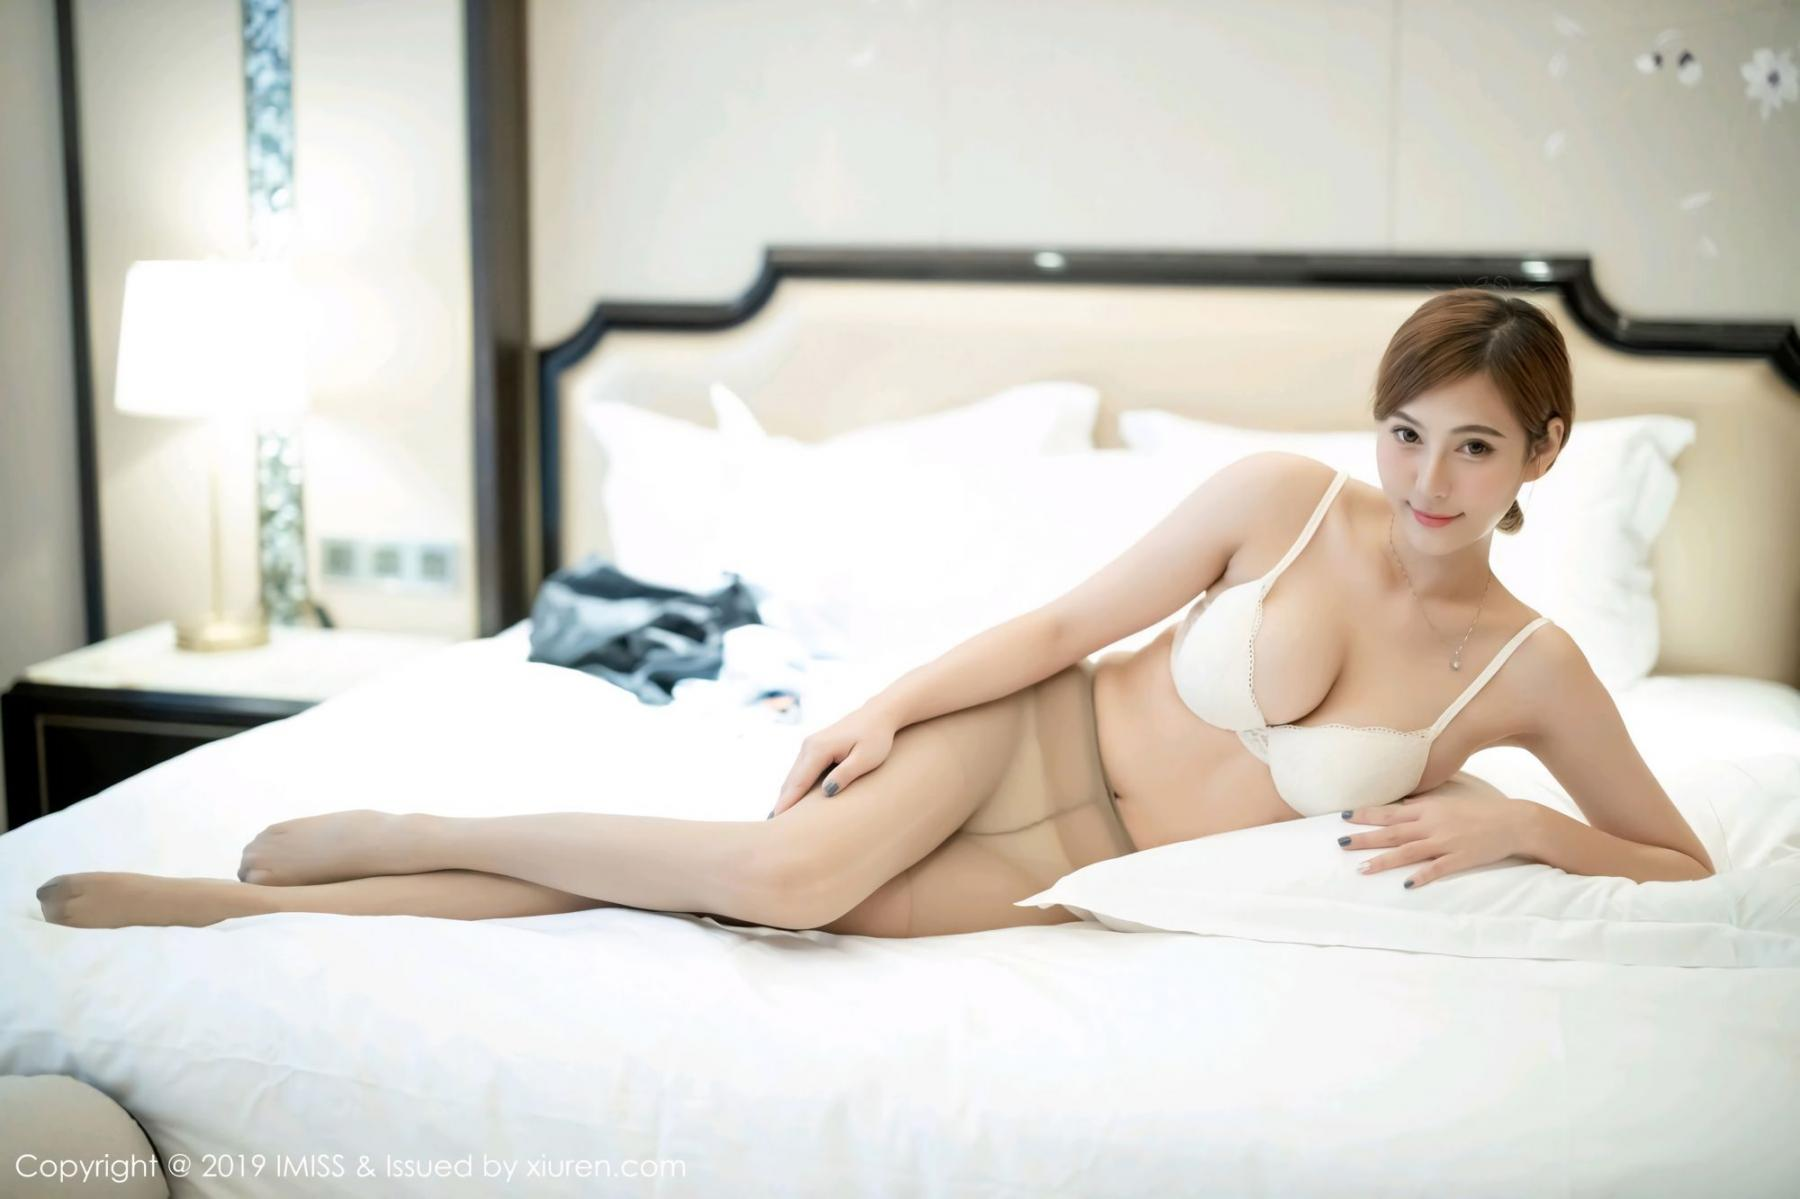 IMiss Vol. 408 Lavinia - Page 3 of 5 - Best Hottie